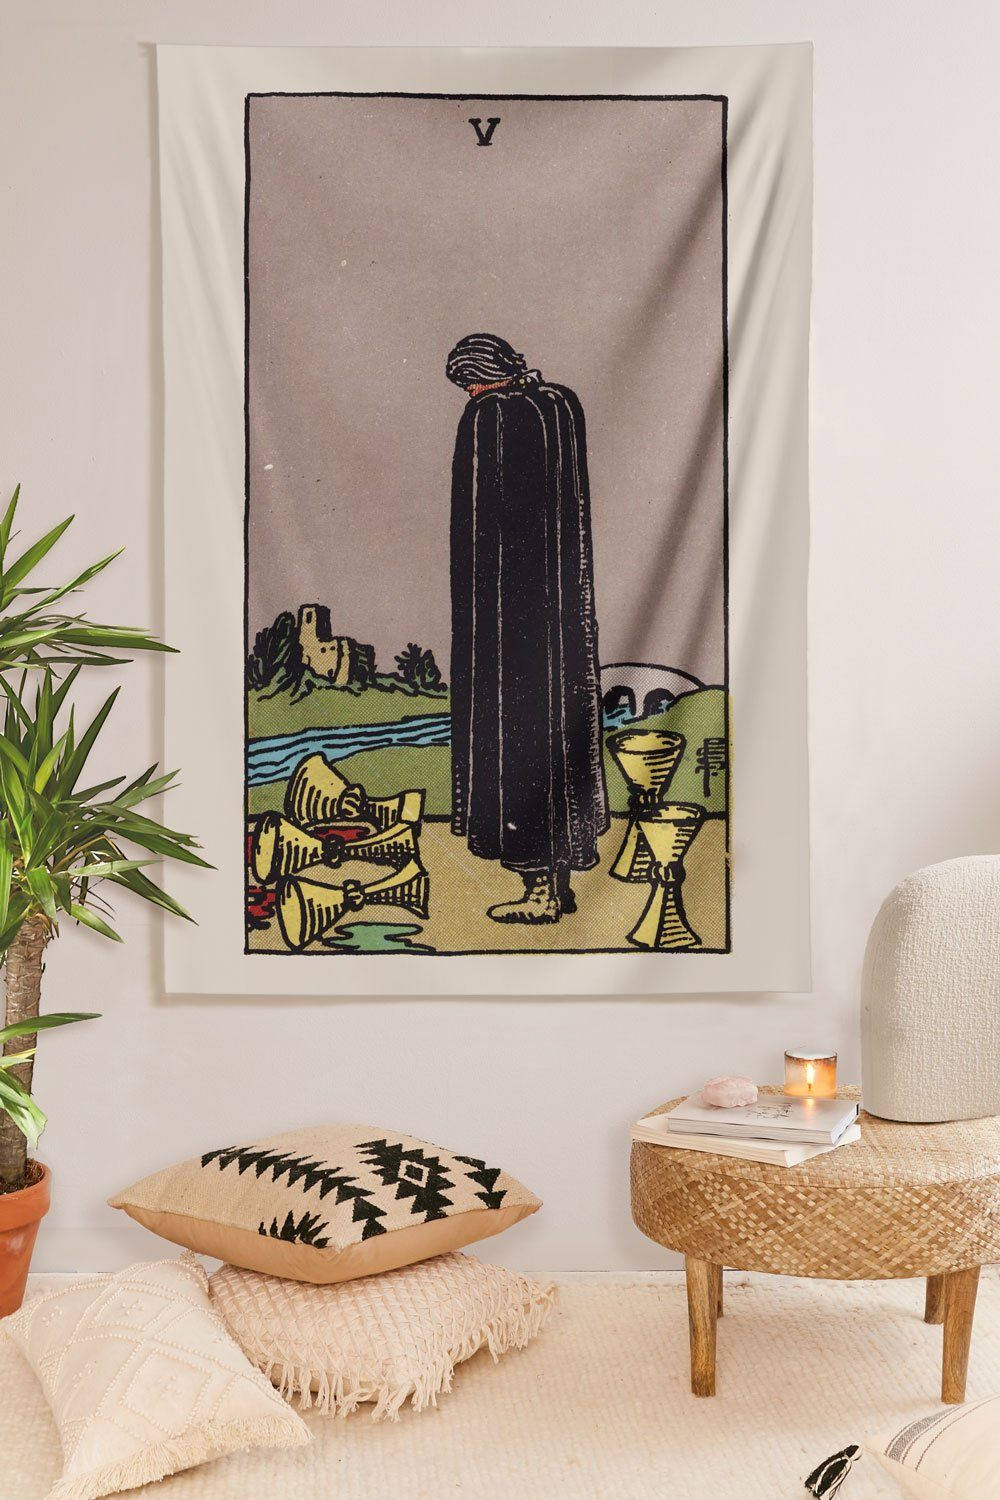 5 of Cups Tapestry tapestry NirvanaThreads